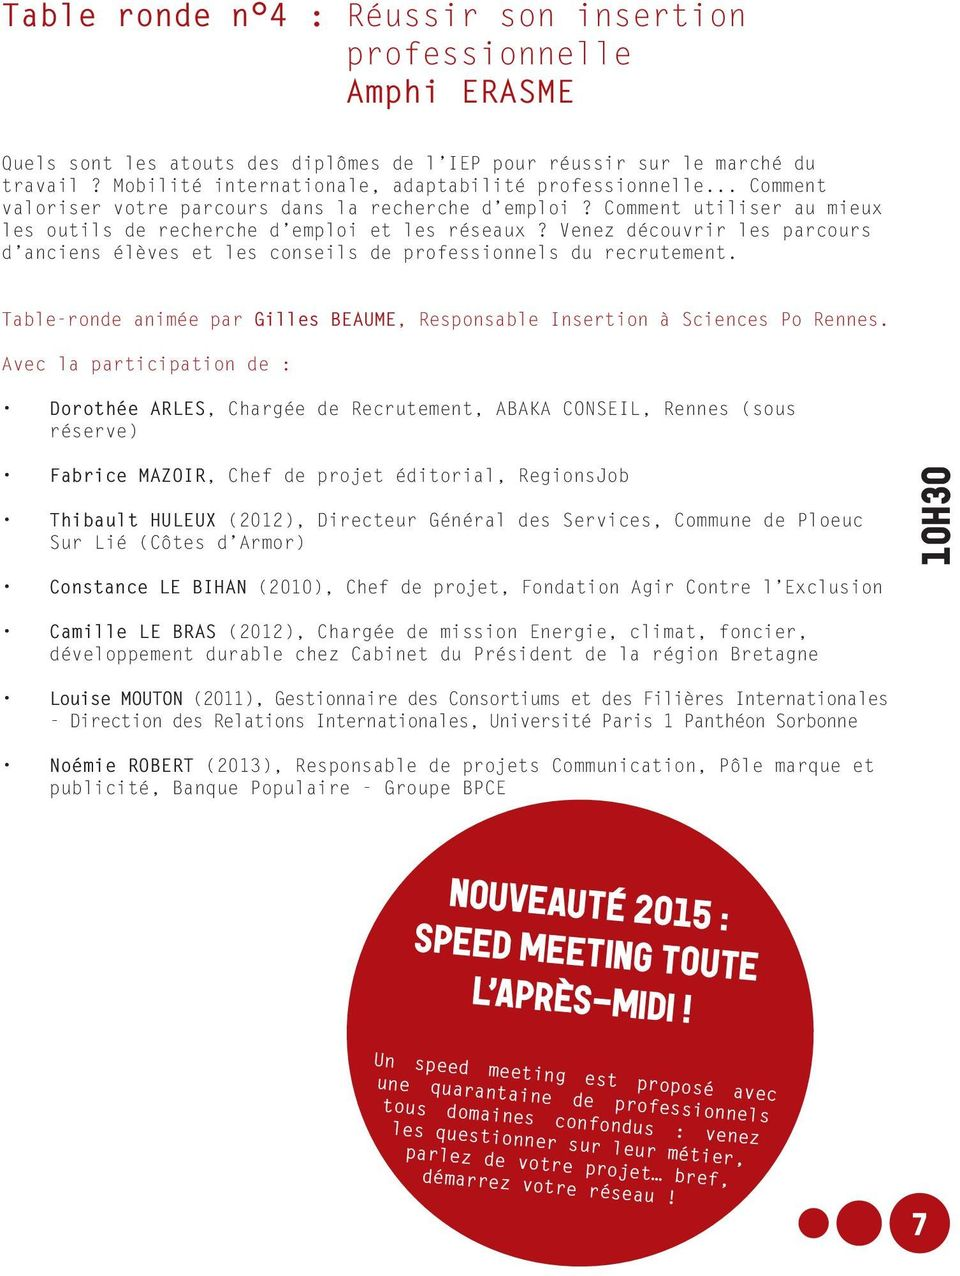 Venez découvrir les parcours d anciens élèves et les conseils de professionnels du recrutement. Table-ronde animée par Gilles BEAUME, Responsable Insertion à Sciences Po Rennes.